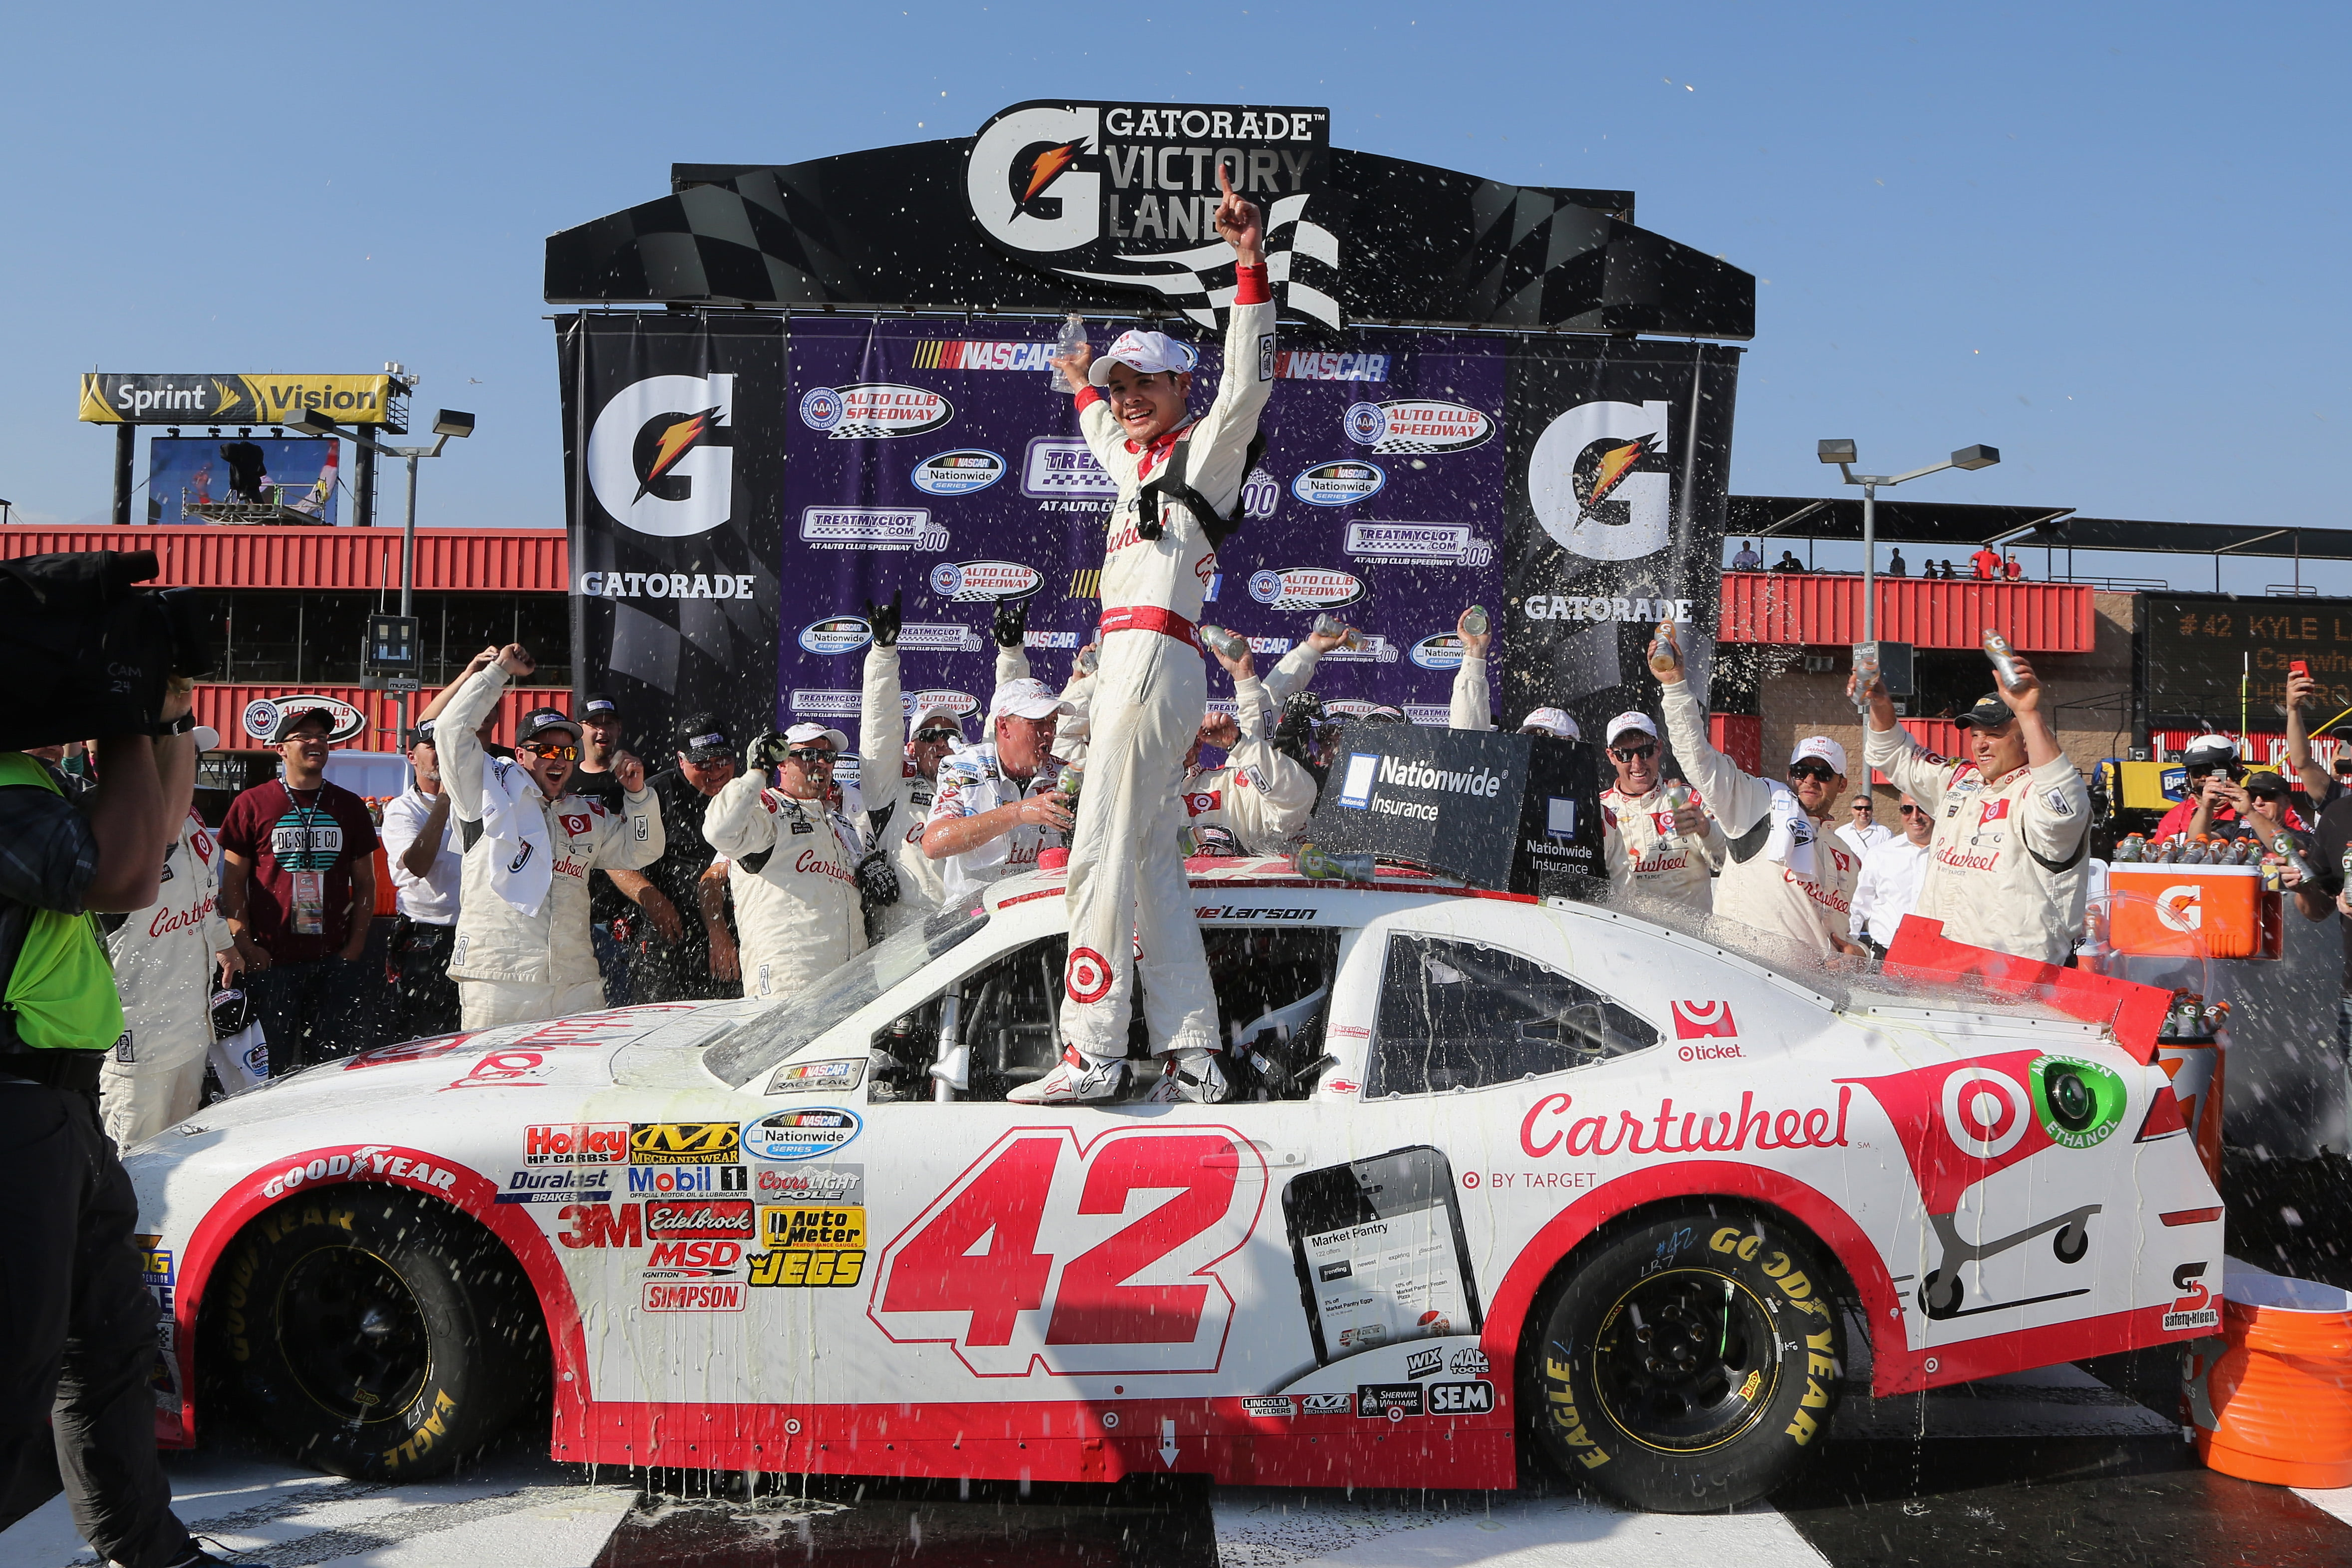 Kyle Larson gets first Nationwide Win